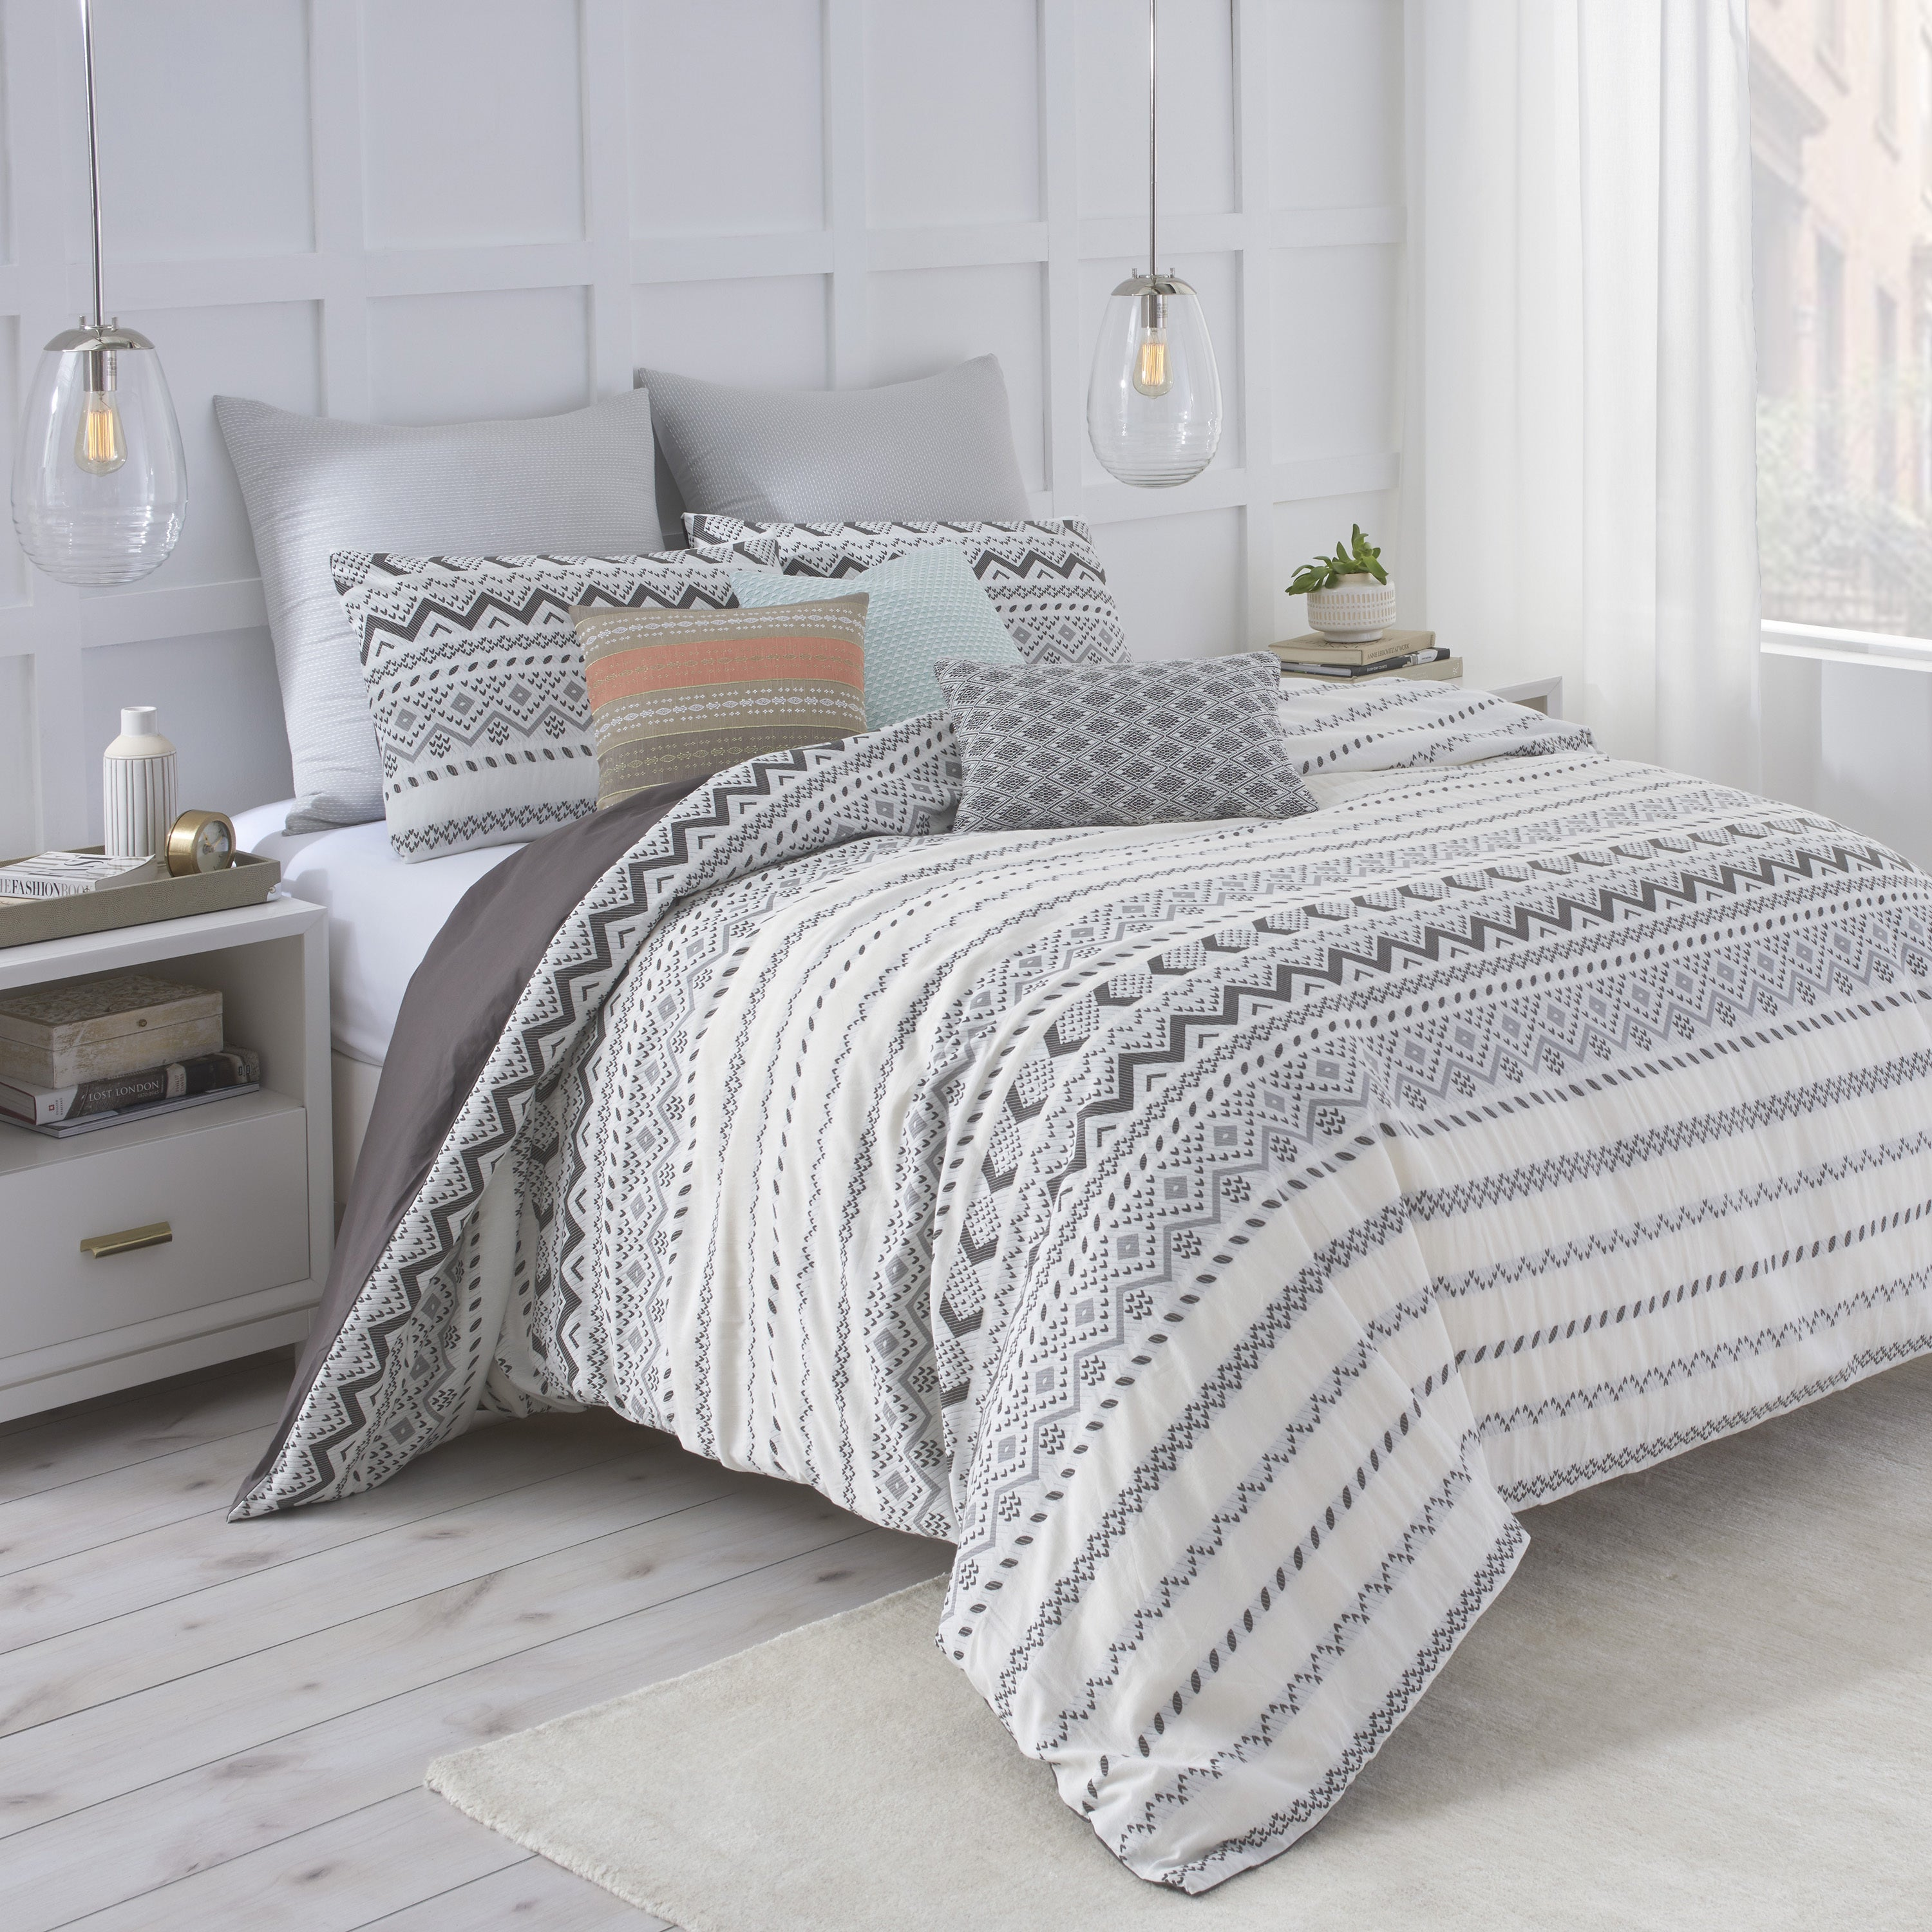 this comforter pin will sets online overstock furniture bedding jewelry queen definitely a mirage electronics com set shopping bright more of with colors clothing cotton